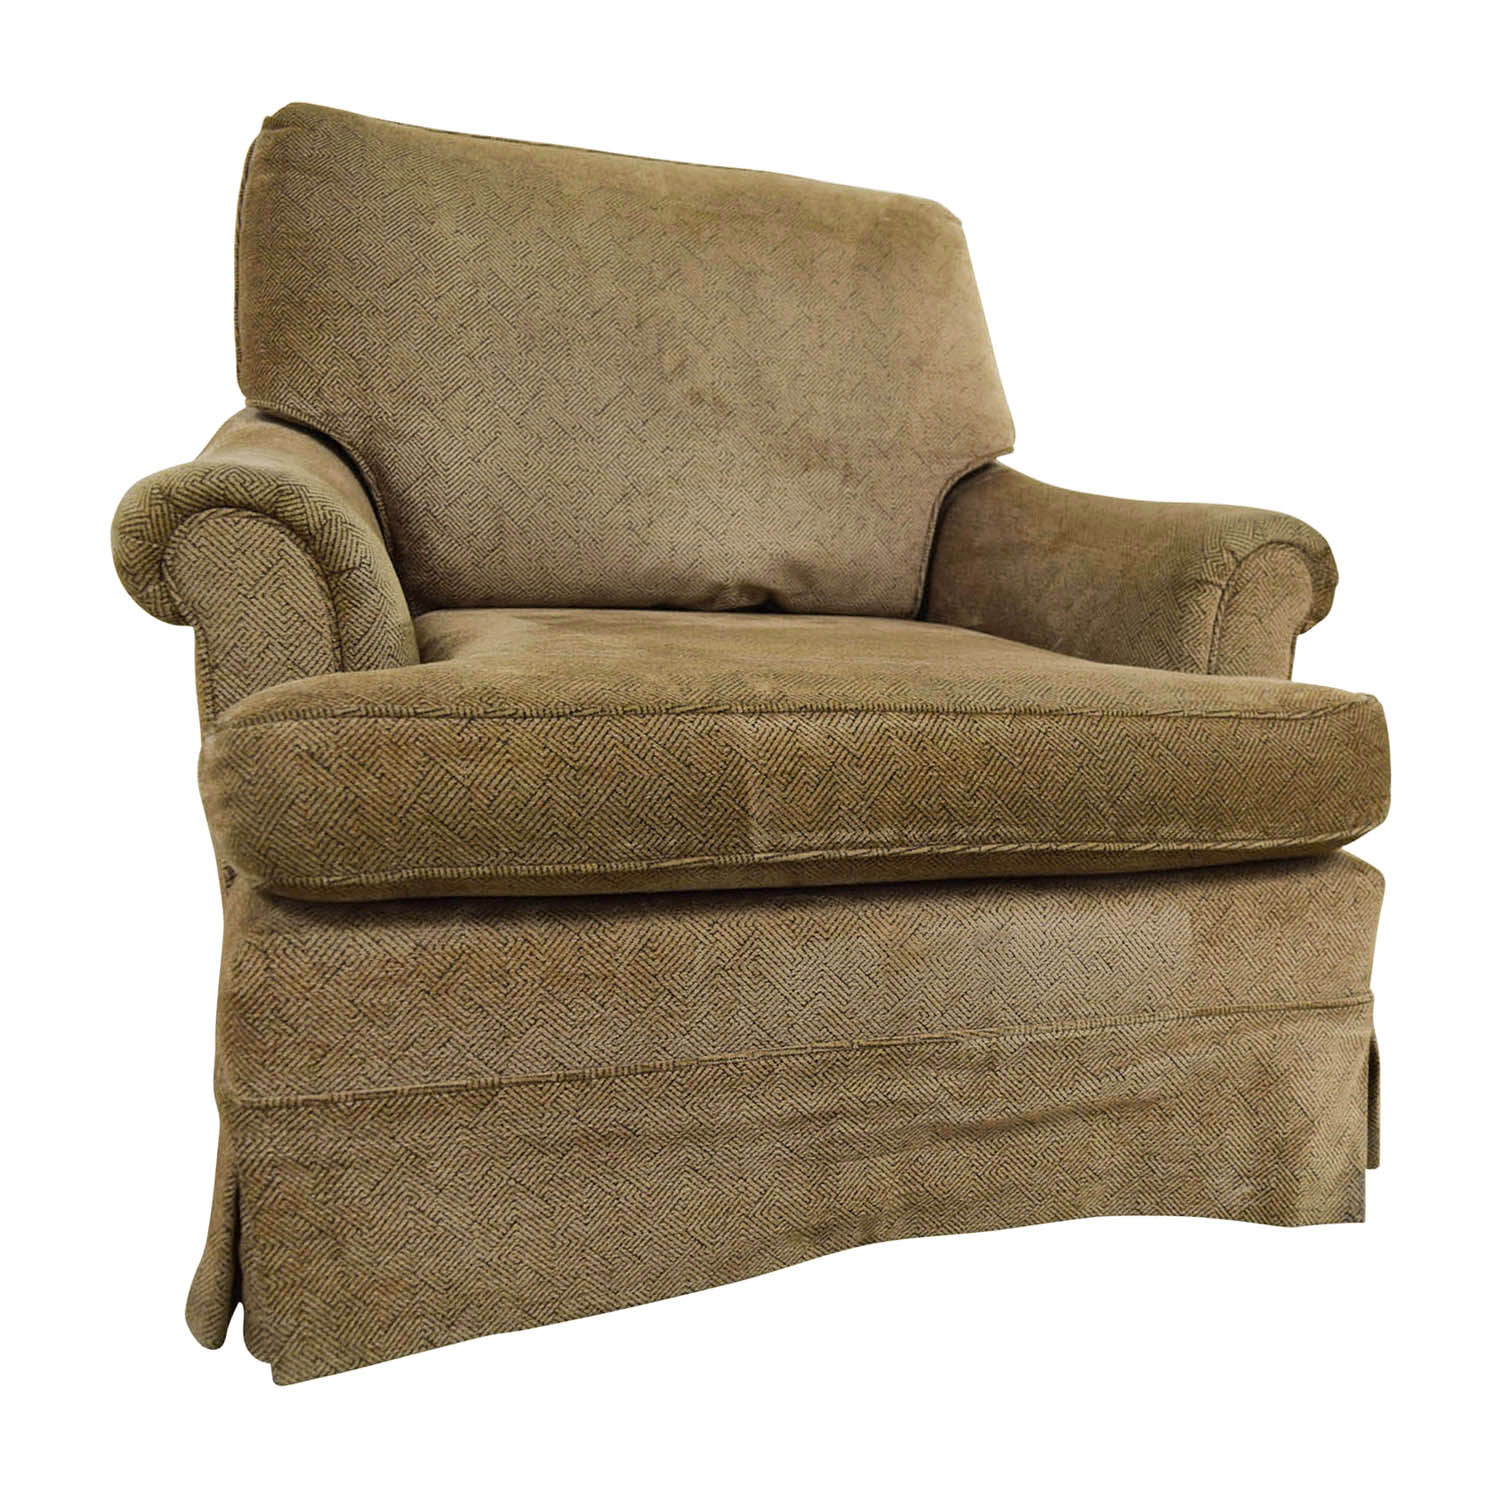 Beau ... Tan Upholstered Accent Chair With Foot Stool Discount ...